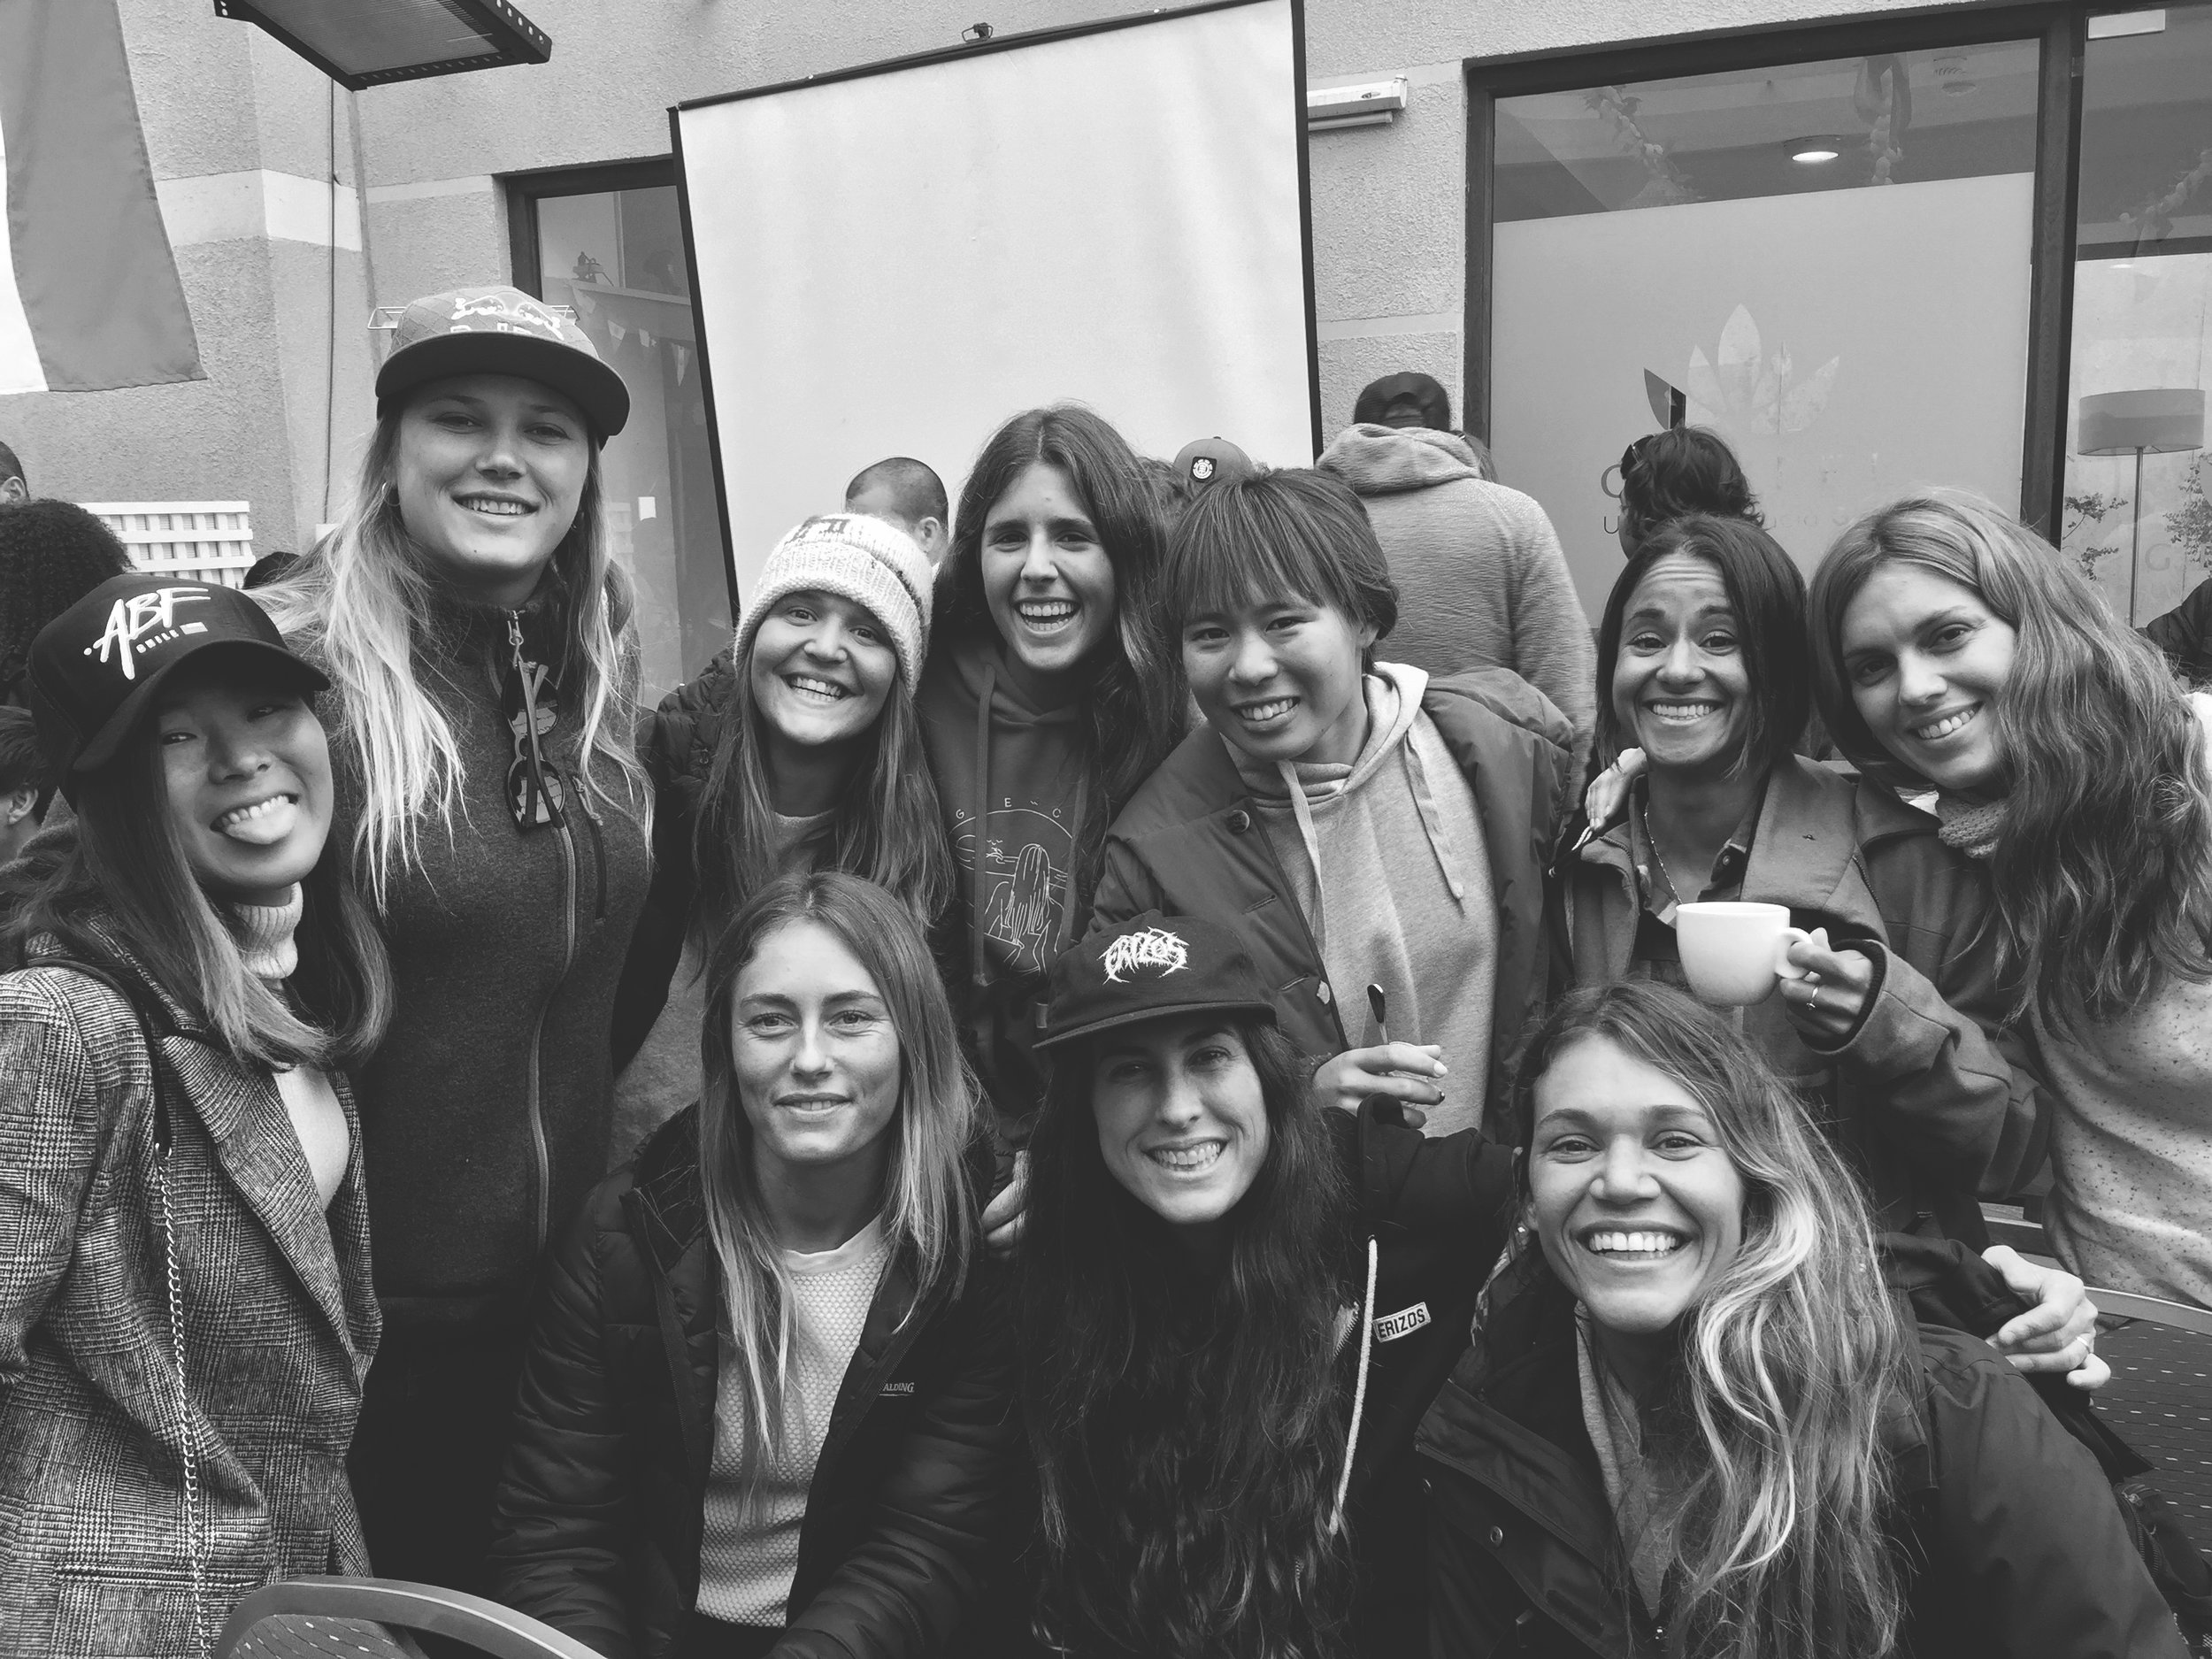 The 'boogie chicks' in Chile recently.